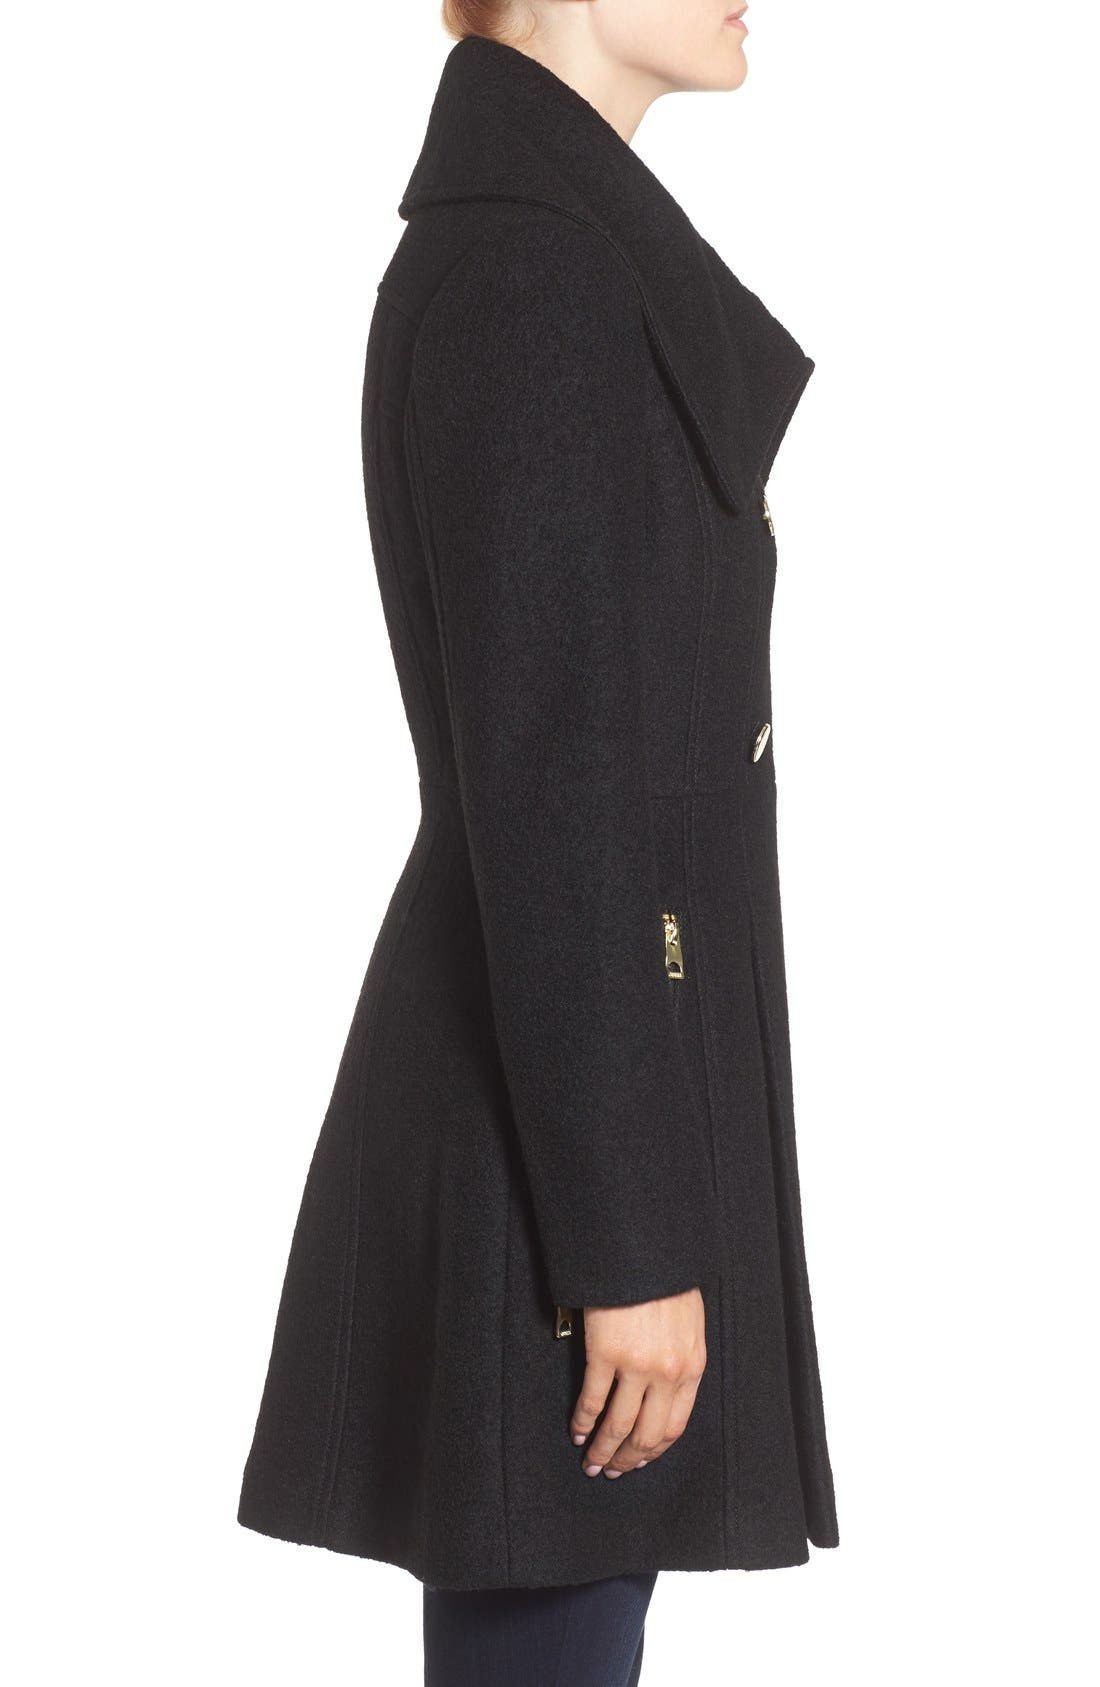 GUESS, Envelope Collar Double Breasted Coat, Alternate thumbnail 2, color, 001